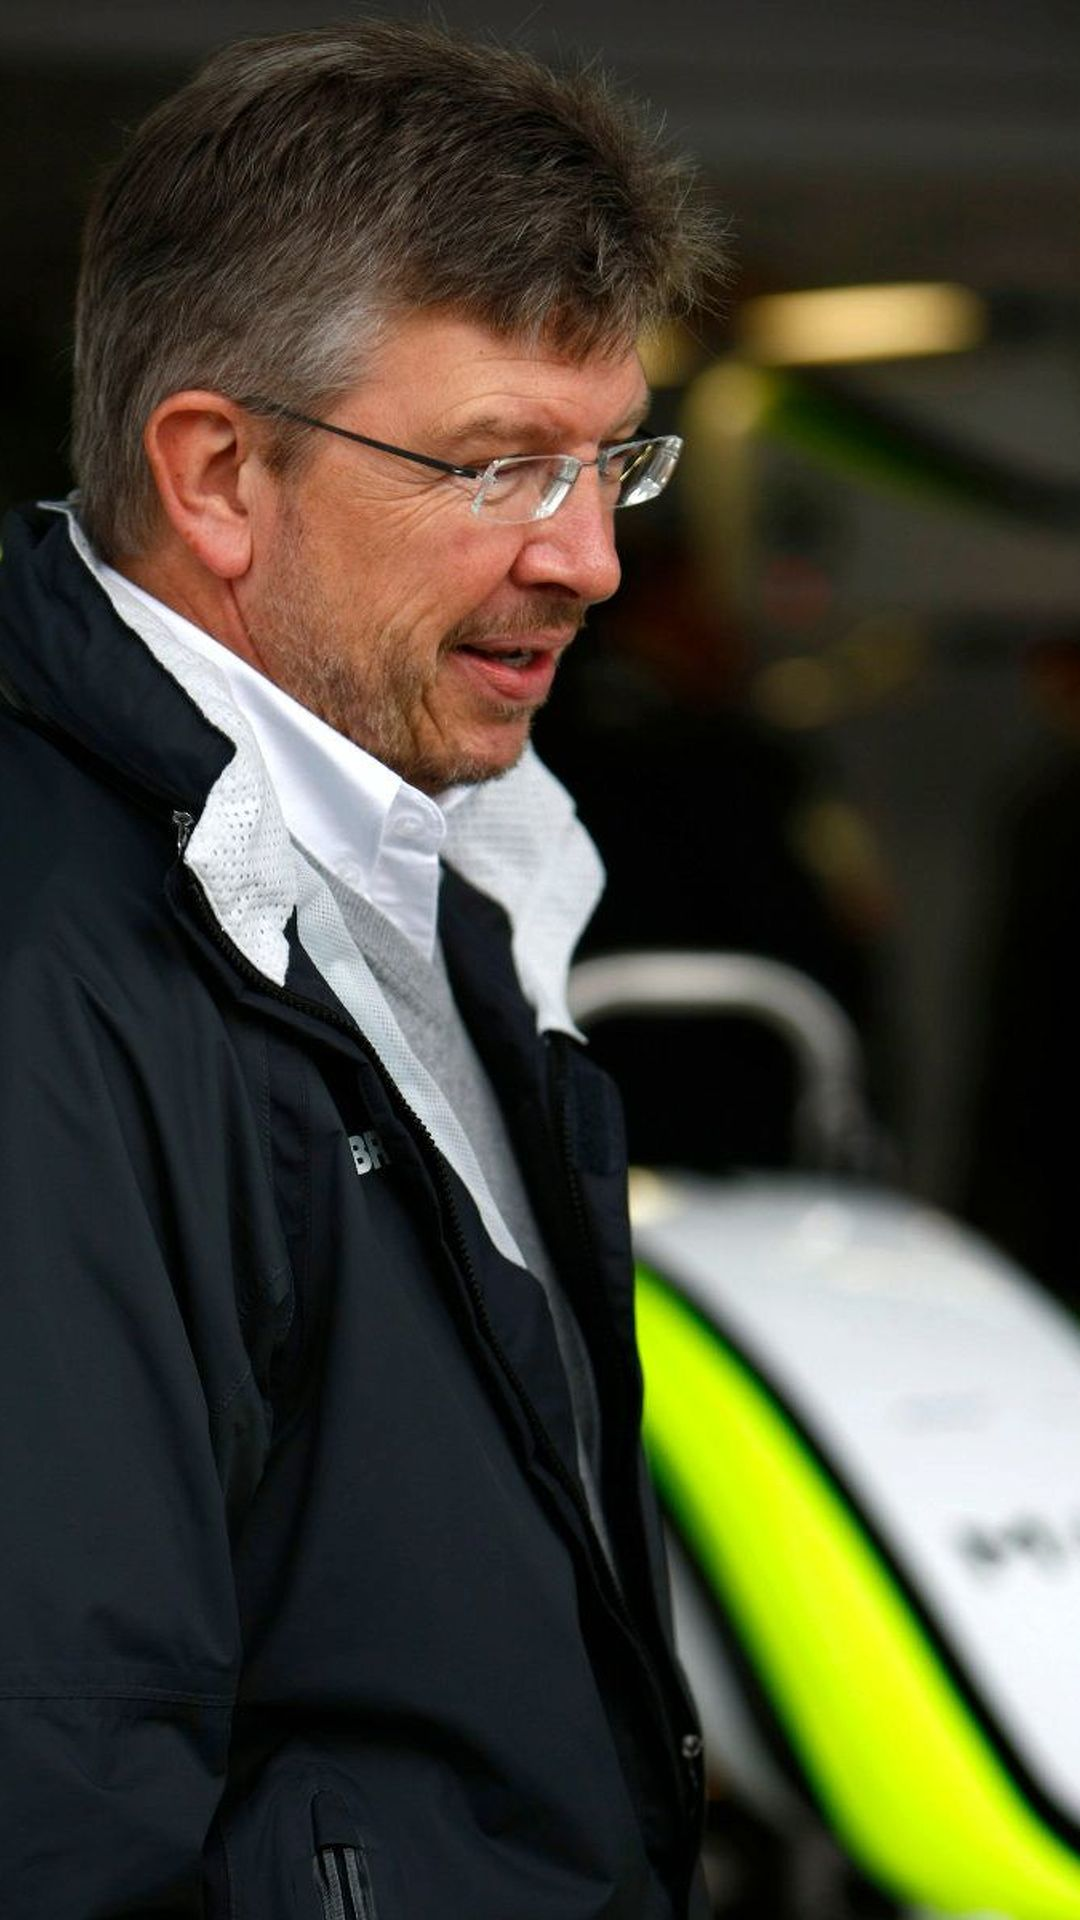 Brawn could lose license for speeding